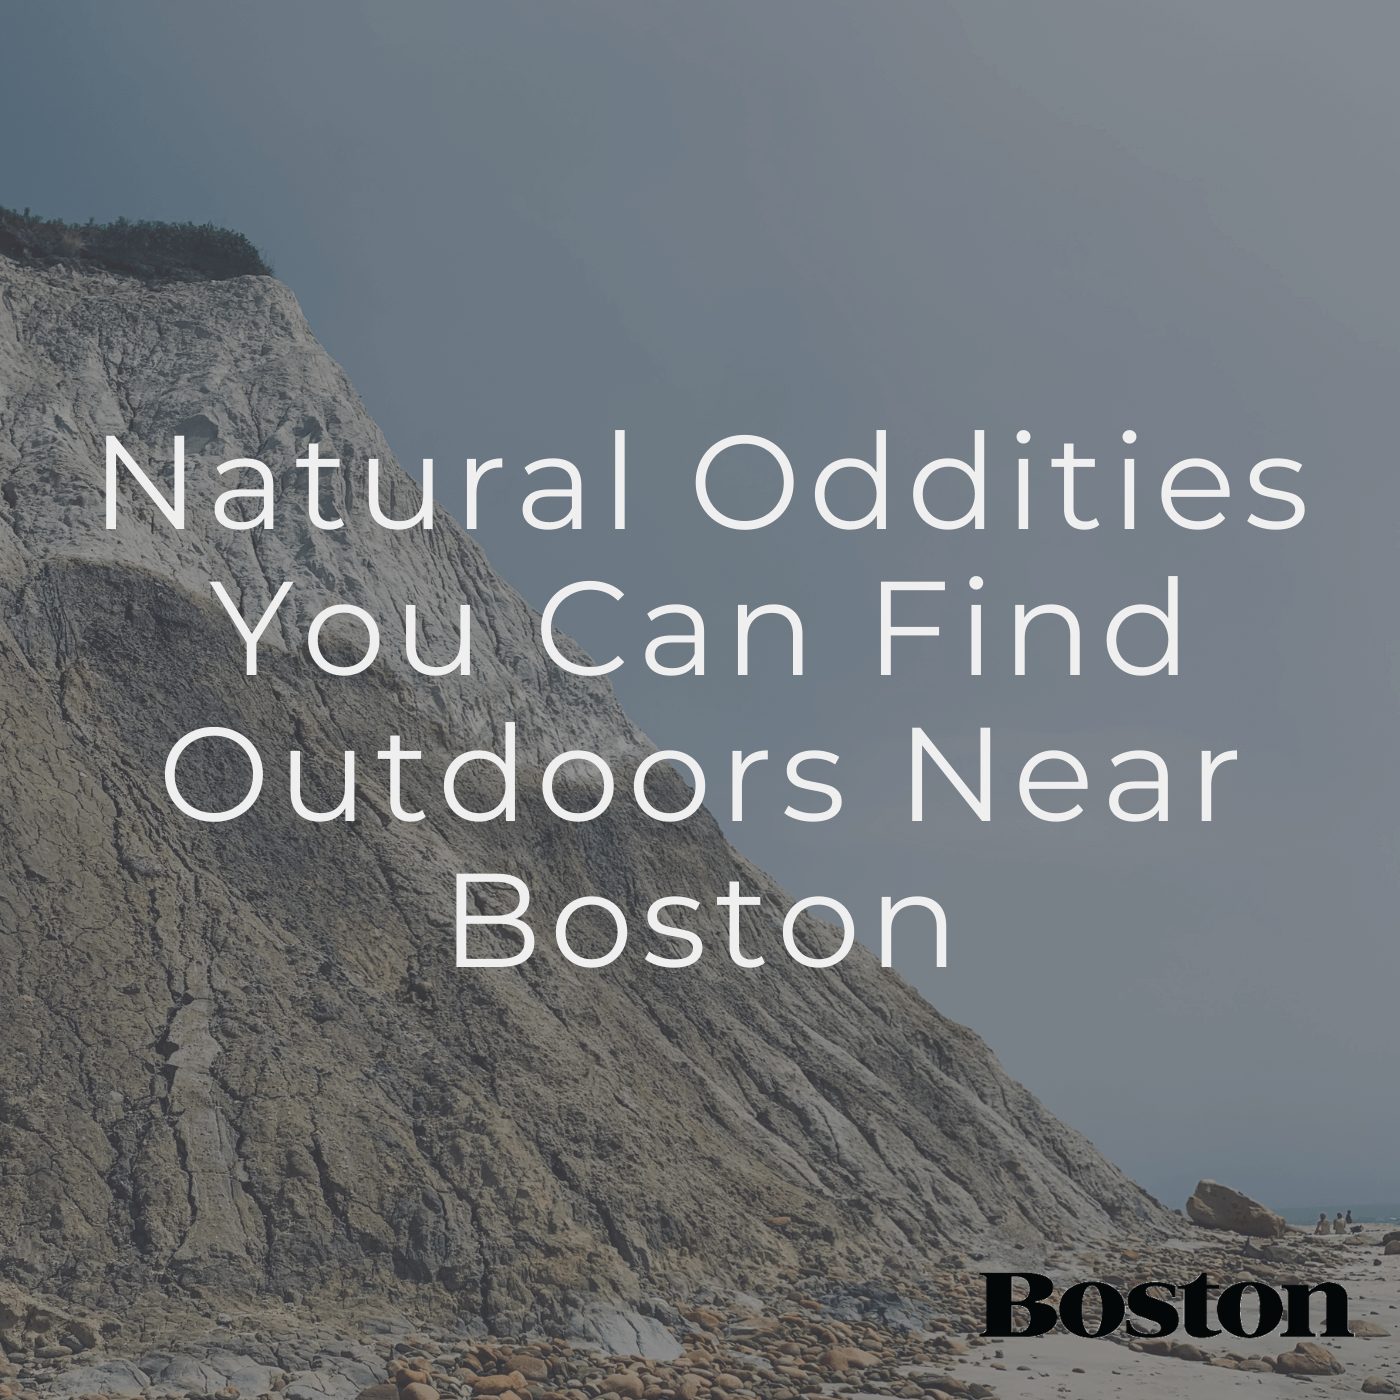 Natural Oddities You Can Find Outdoors near Boston